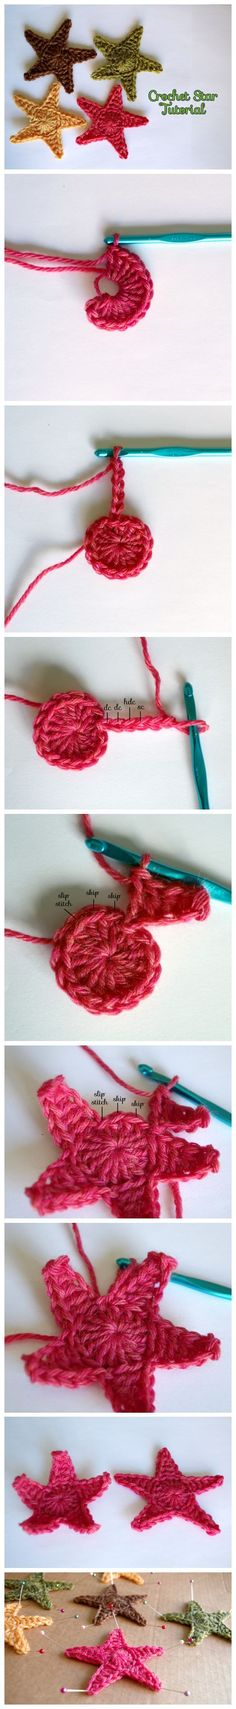 How to make a crochet star-We Like Craft